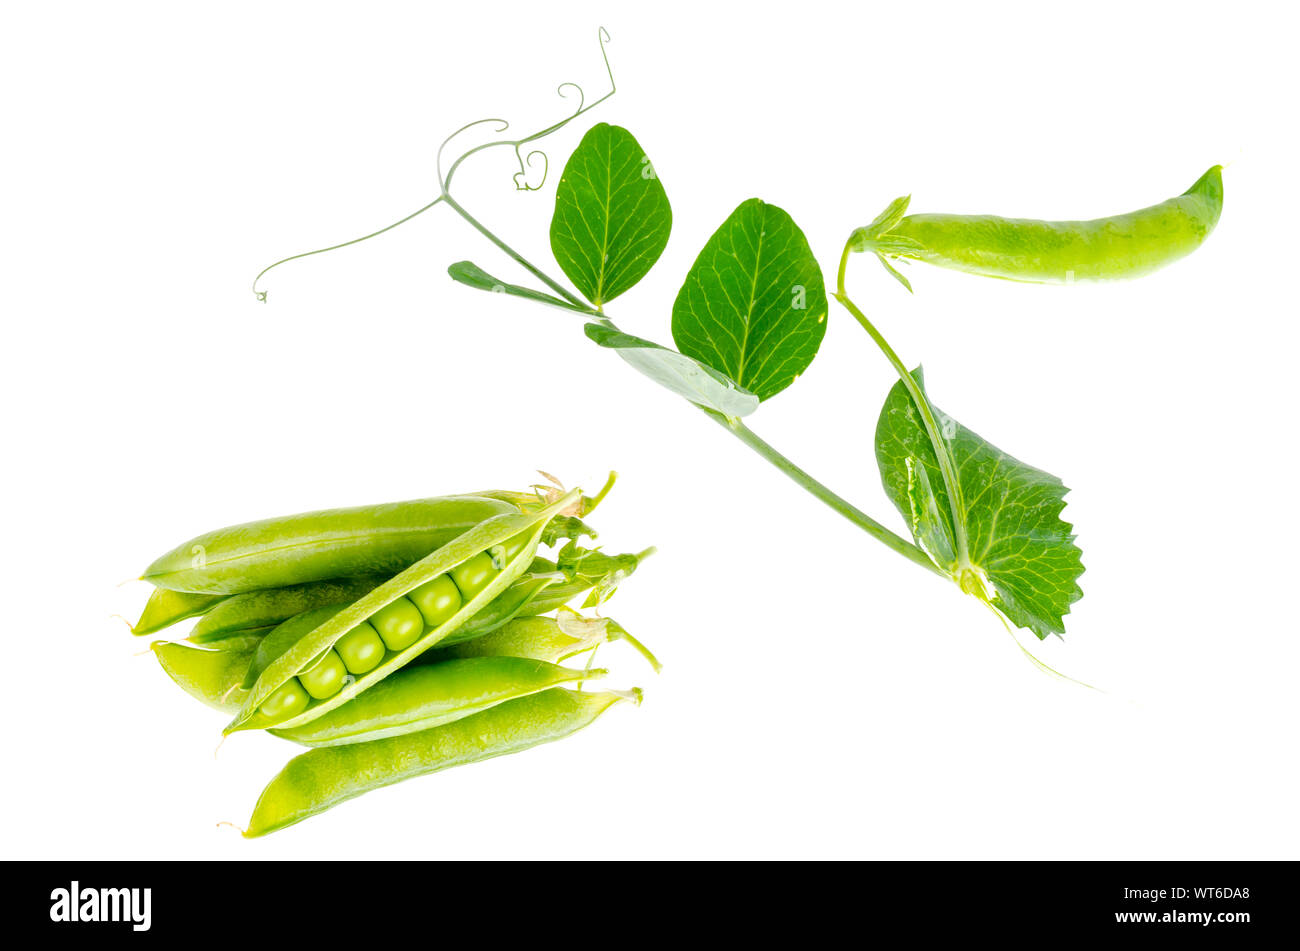 Branch of green peas with leaves and pods. Studio Photo Stock Photo